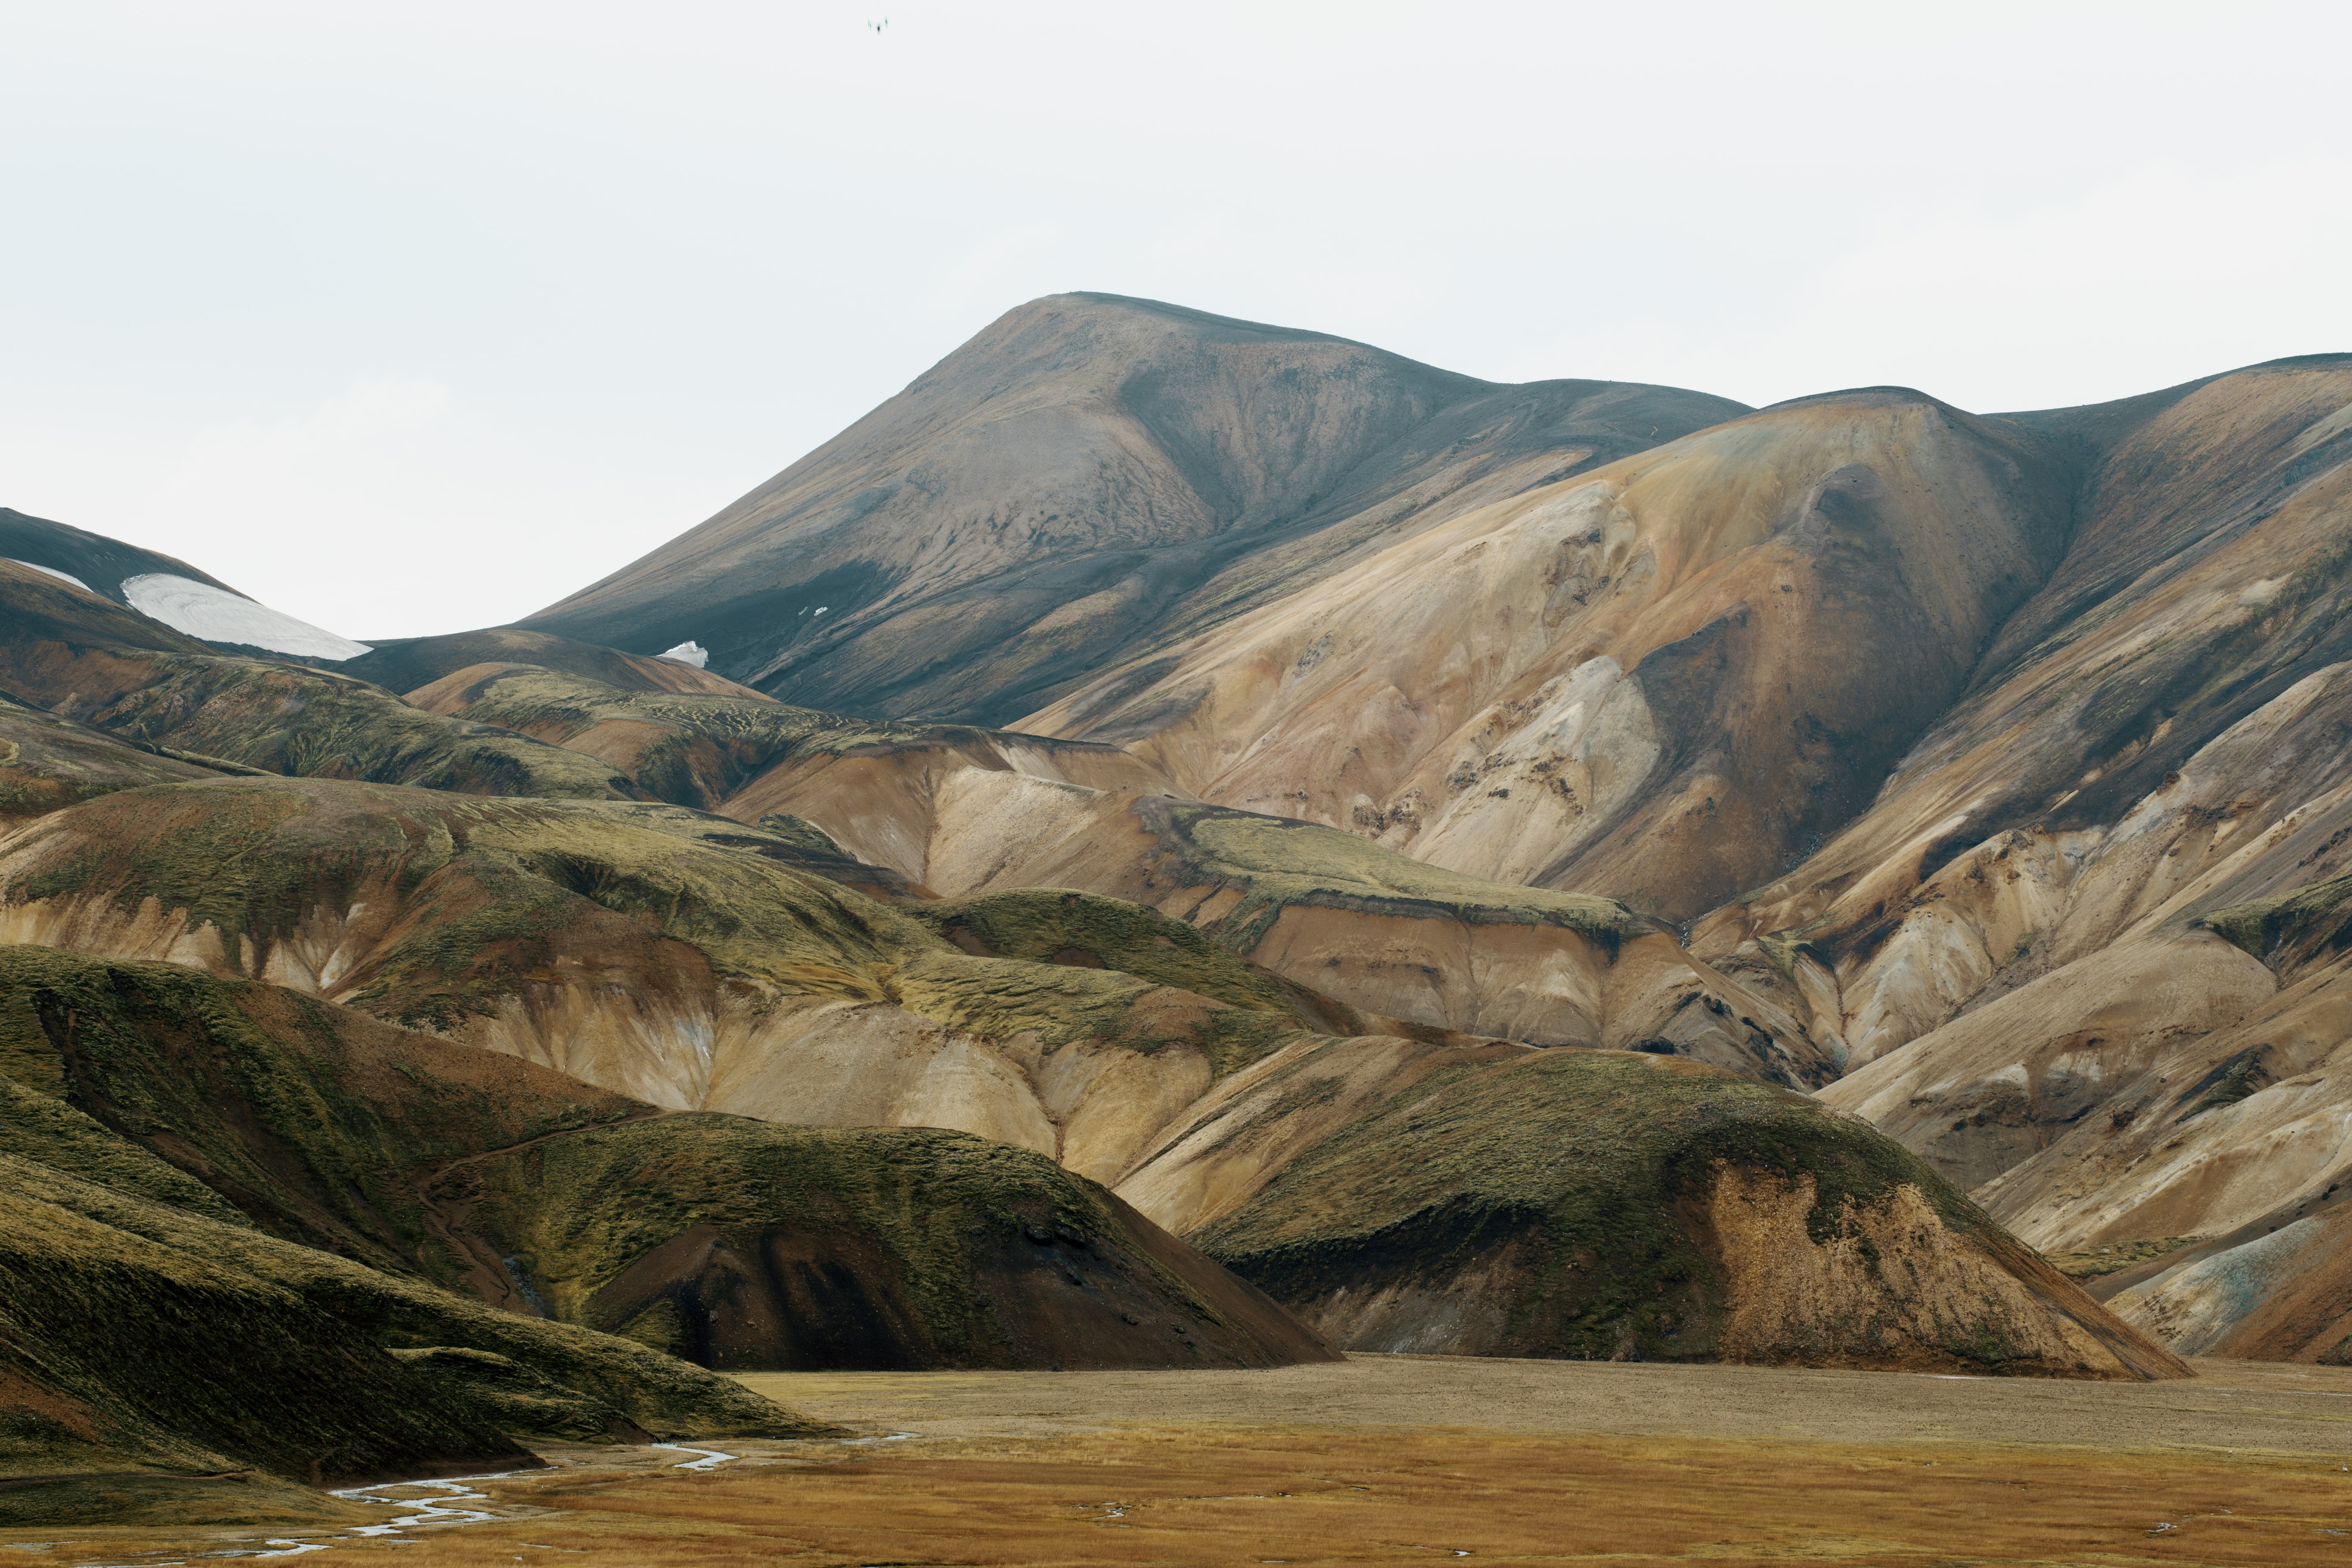 An eroded mountain ridge in Landmannalaugar